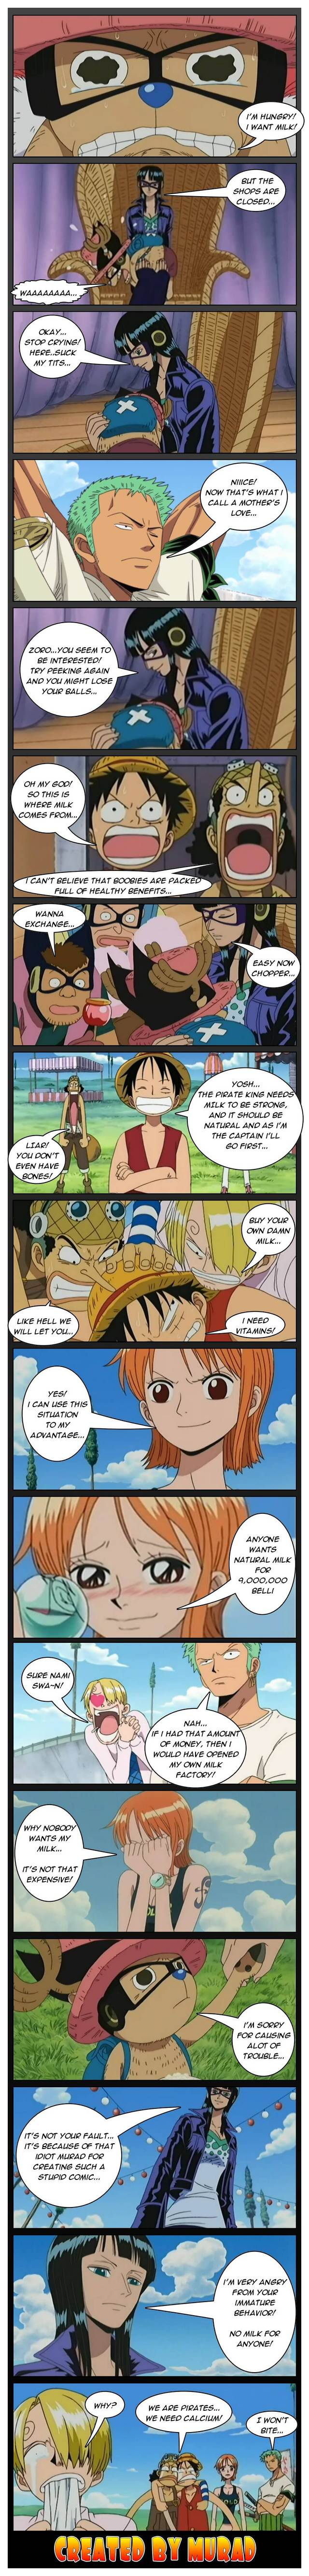 Crunchyroll forum funny anime pictures page 148 - Spoiler Alert Click To Show Or Hide